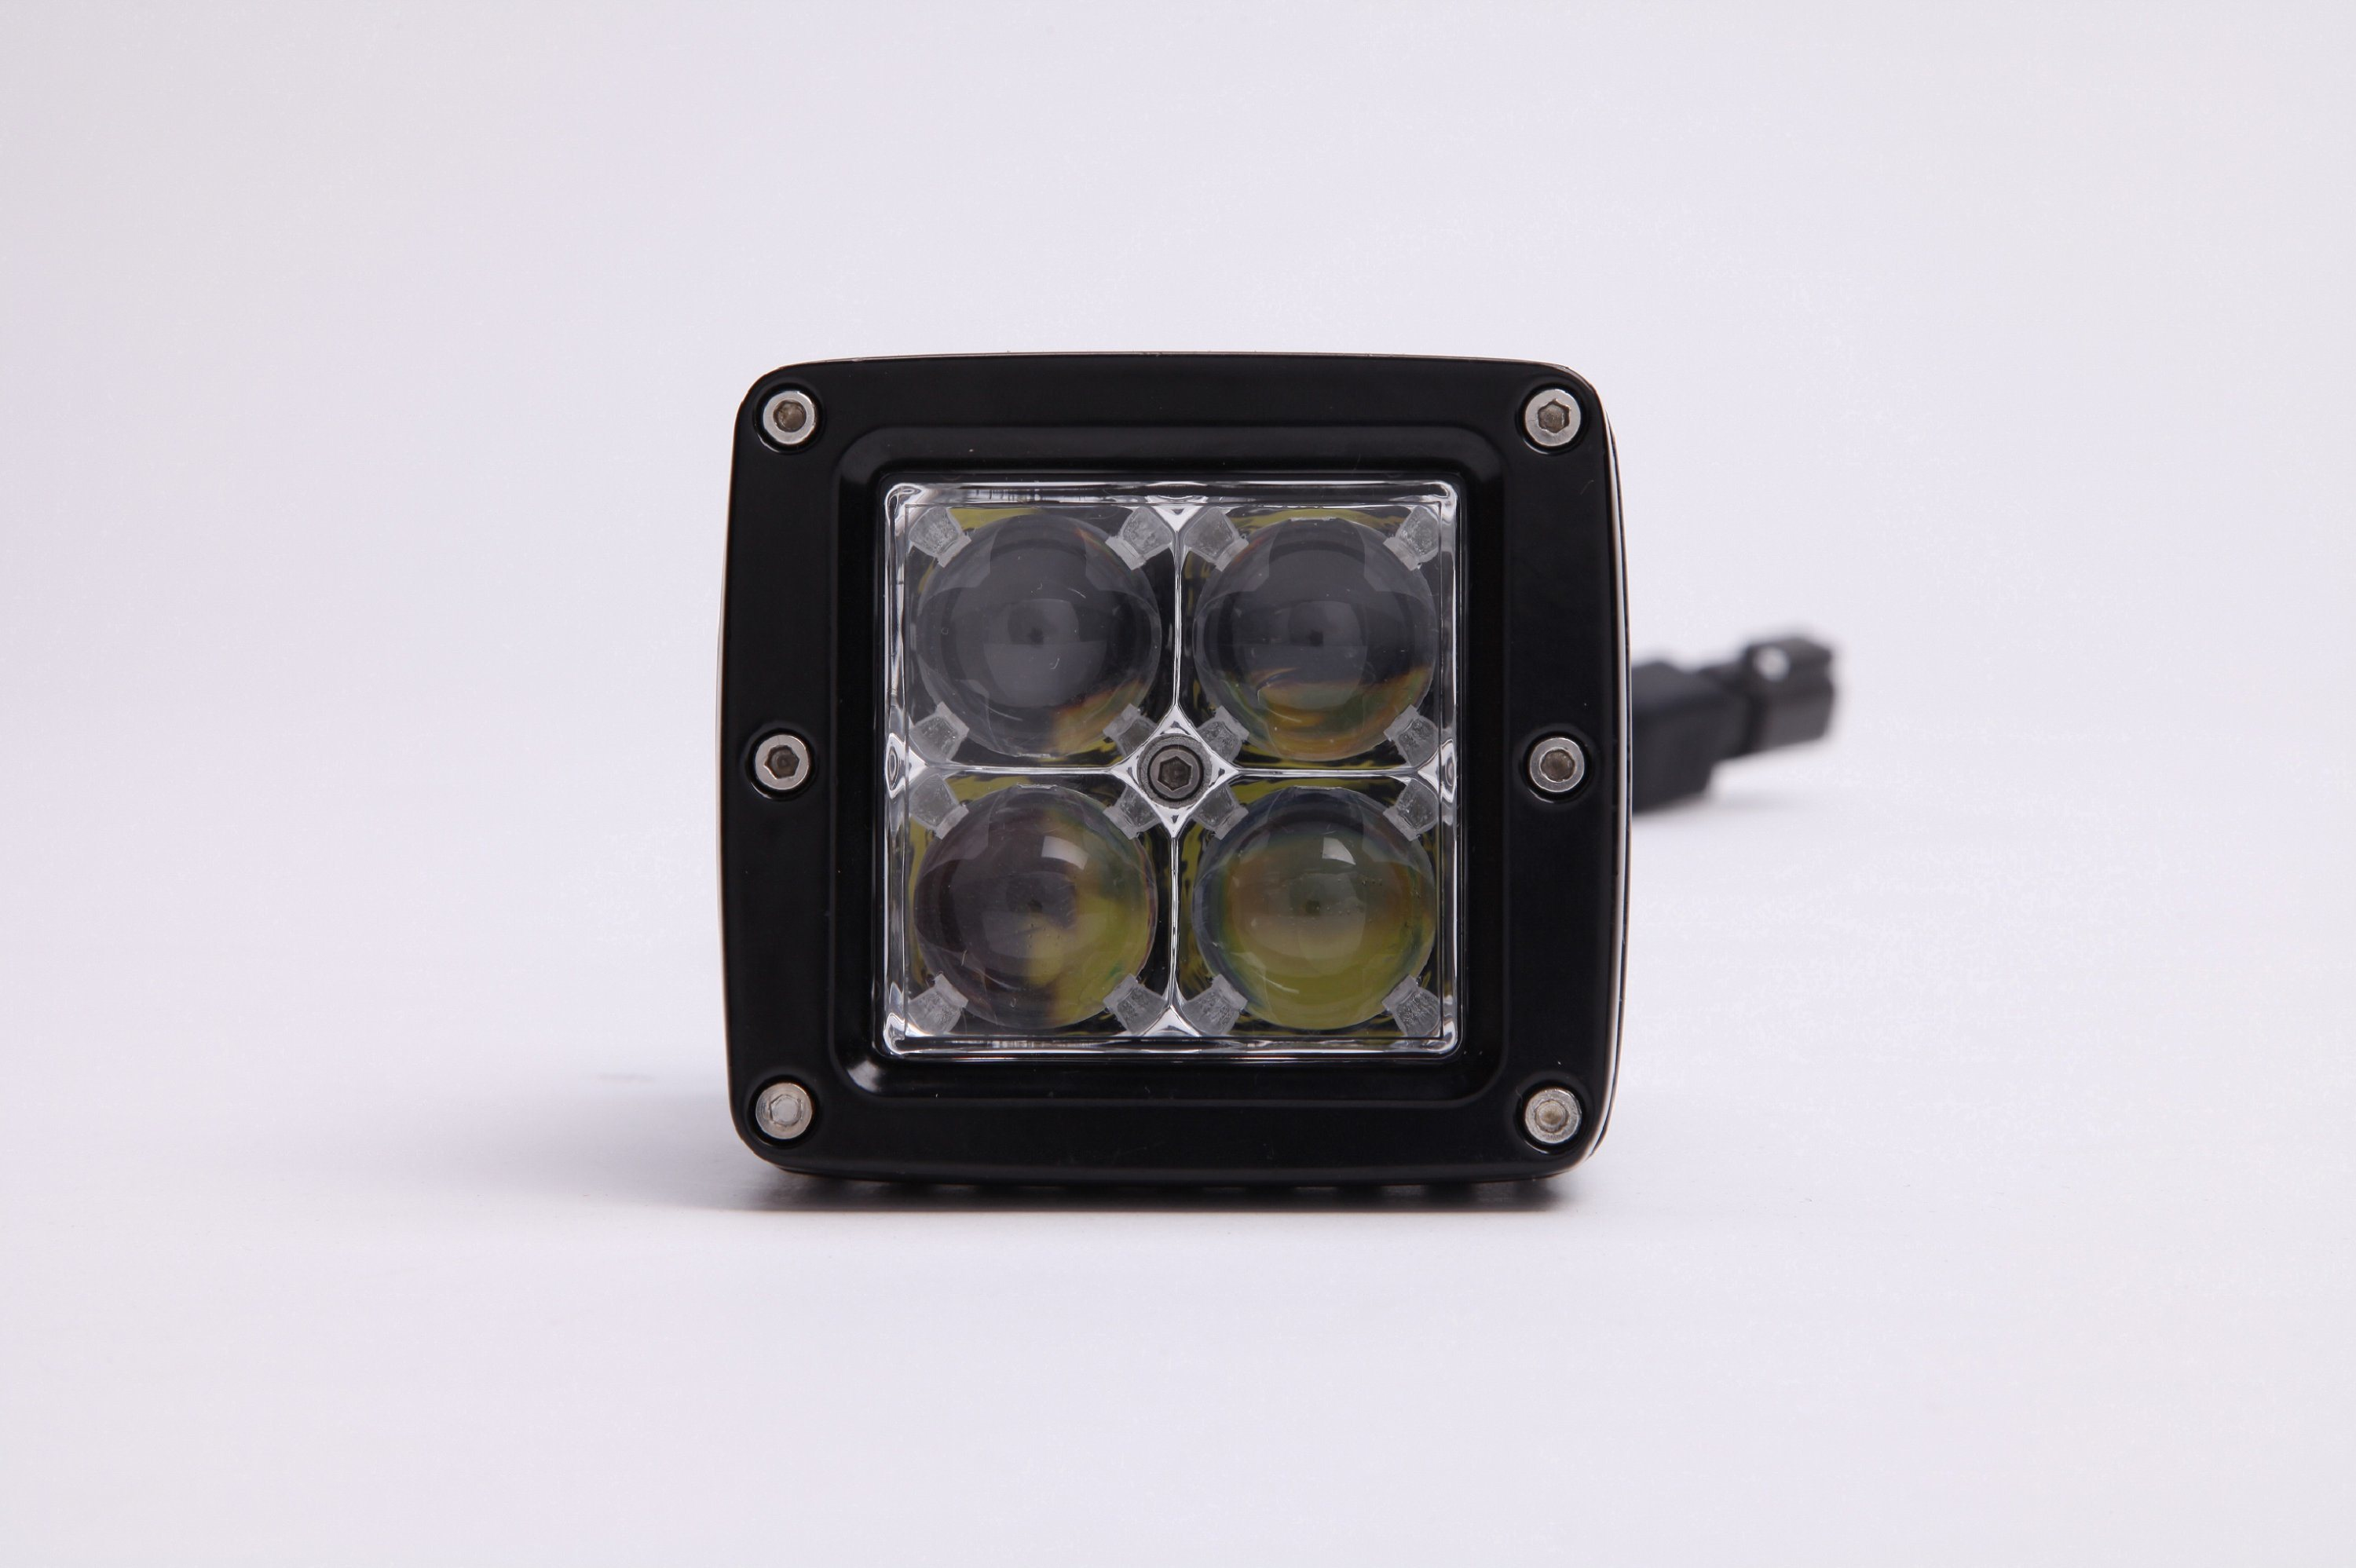 4inch LED Working Light, Three Years Warranty LED Working Light, High Quality 1250lm Car LED Auto Lamp for Trucks, Cars, ATV